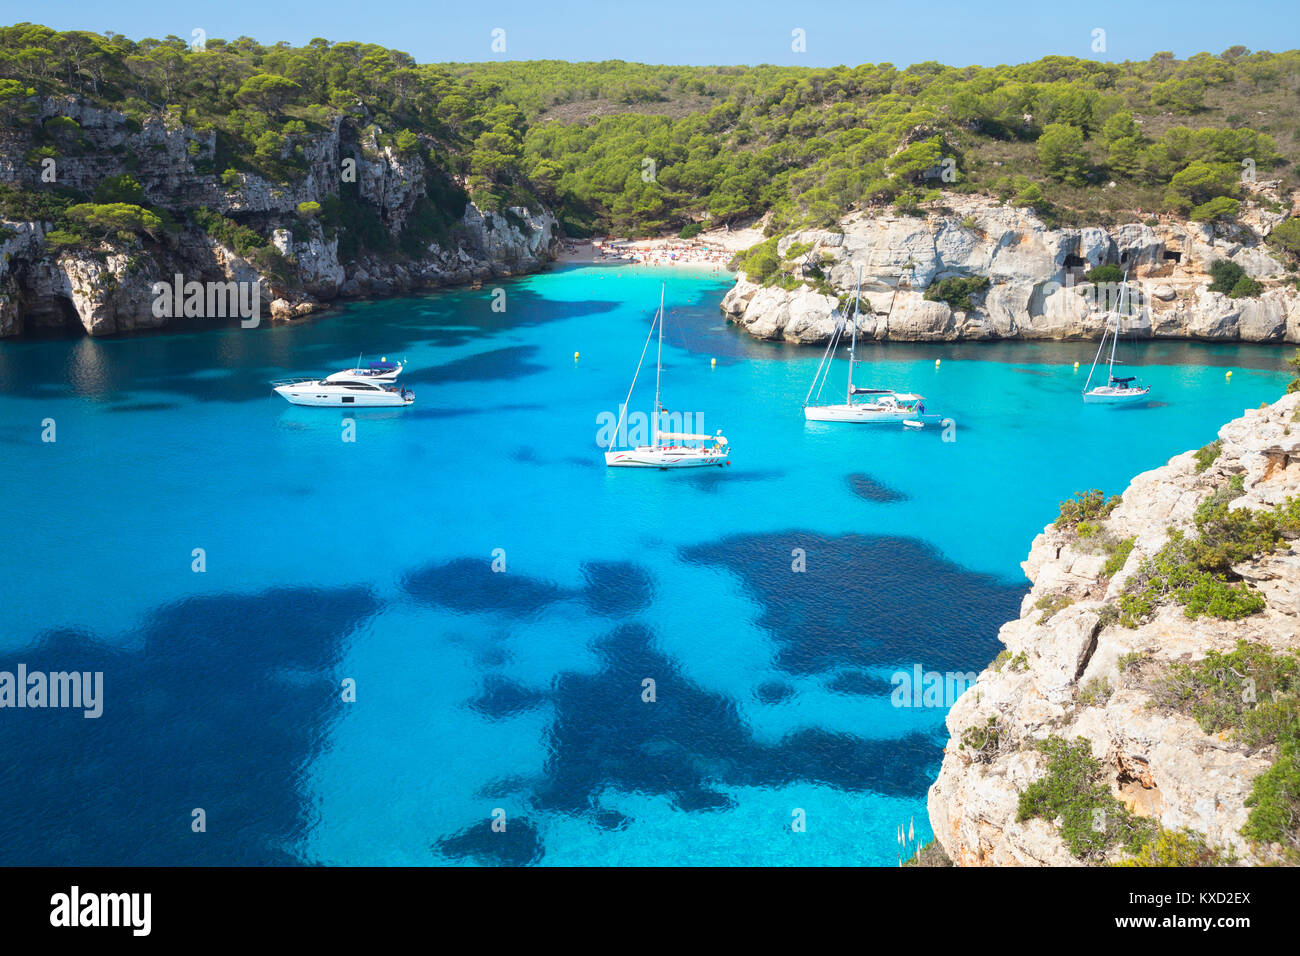 View of Cala Macarelleta and sailboats, Menorca, Balearic Islands, Spain, Europe - Stock Image